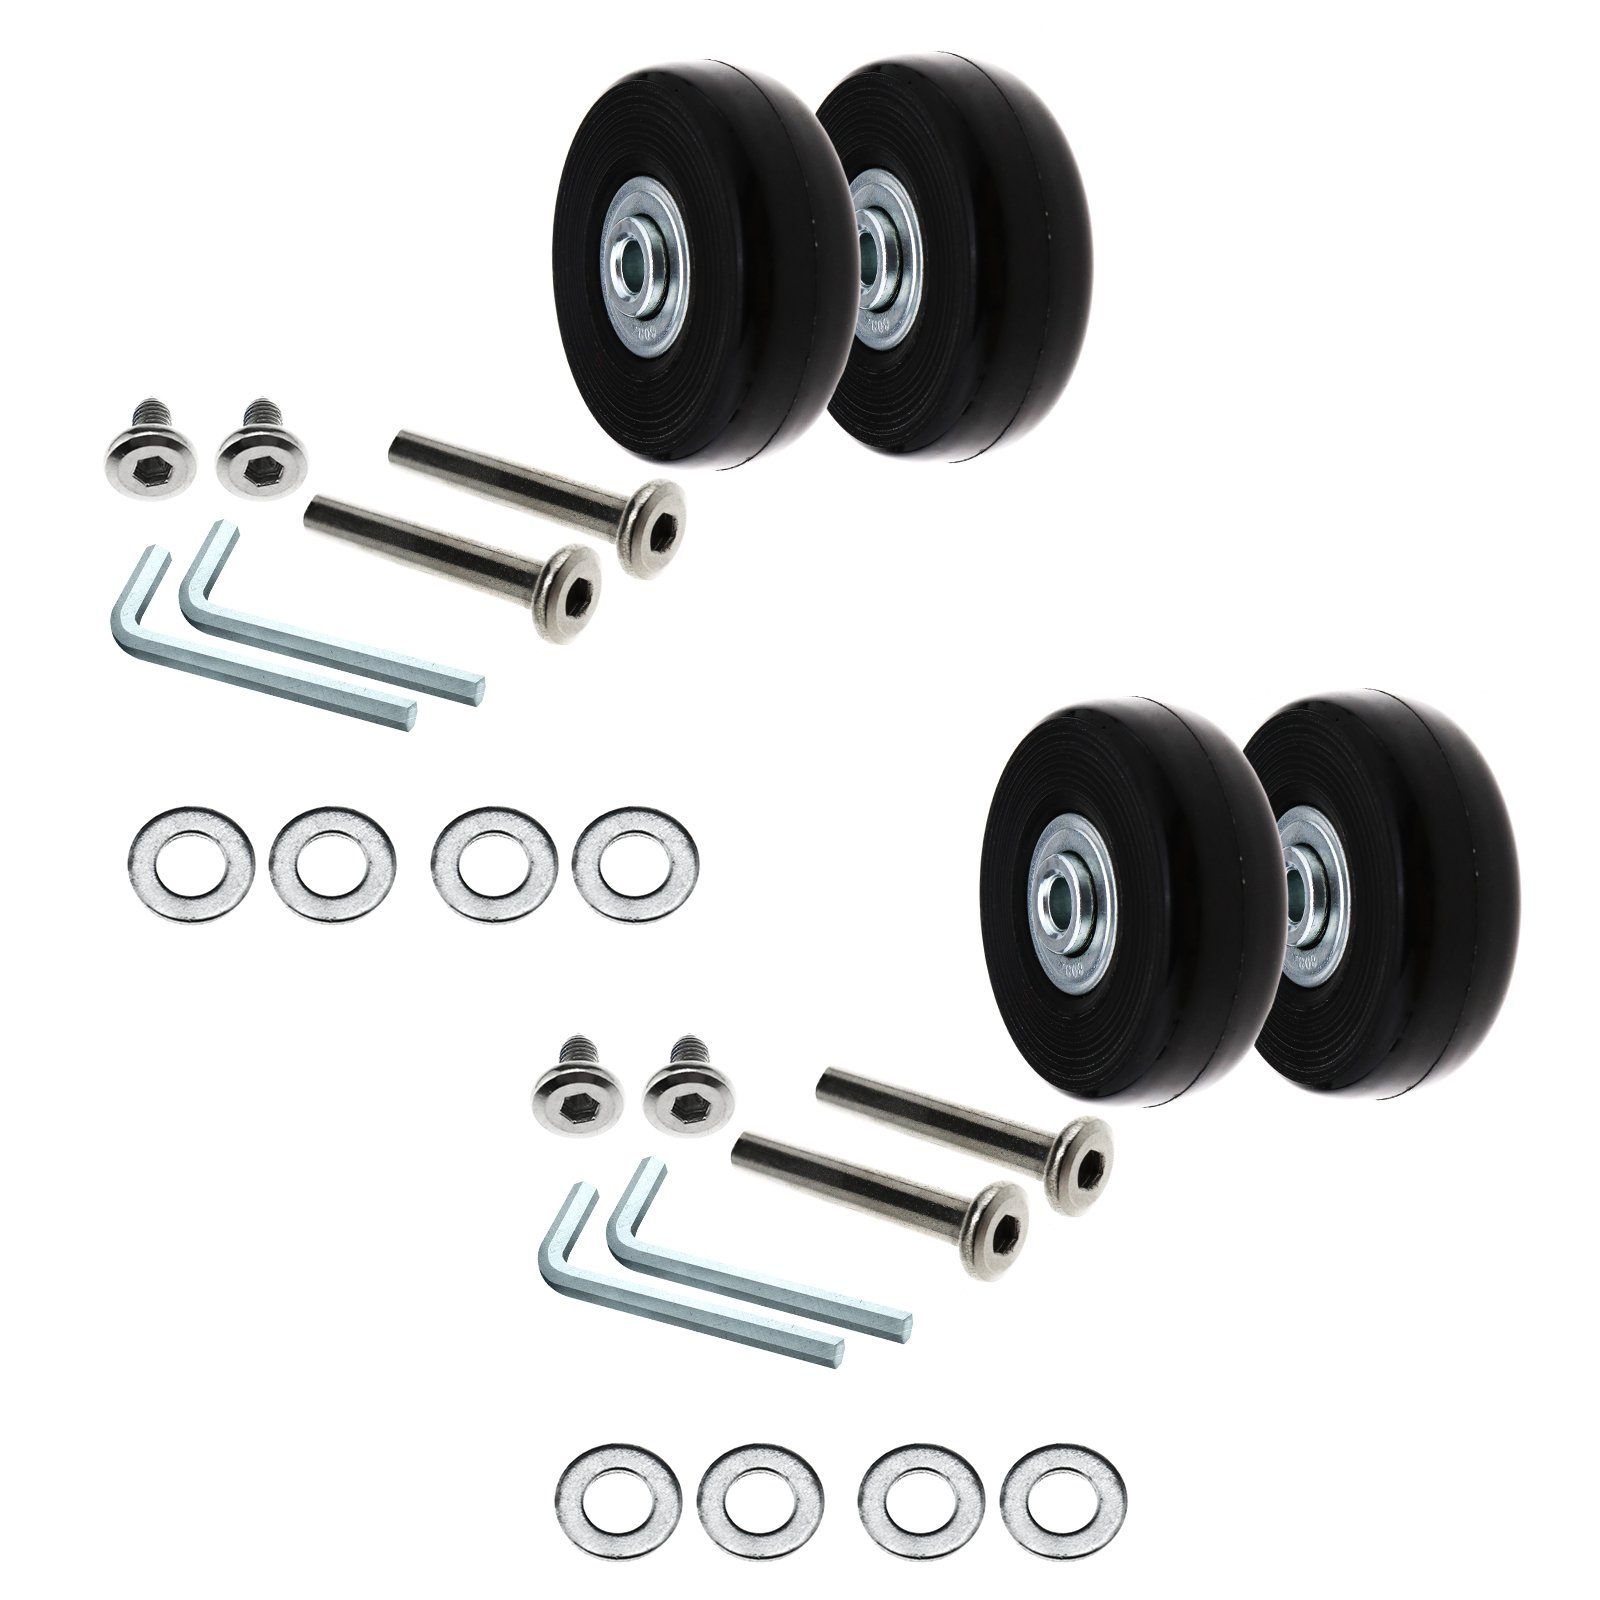 SING F LTD Luggage Suitcase Replacement Wheels 50mm Repair Tools kit Axles Rubber Deluxe, 4 Set